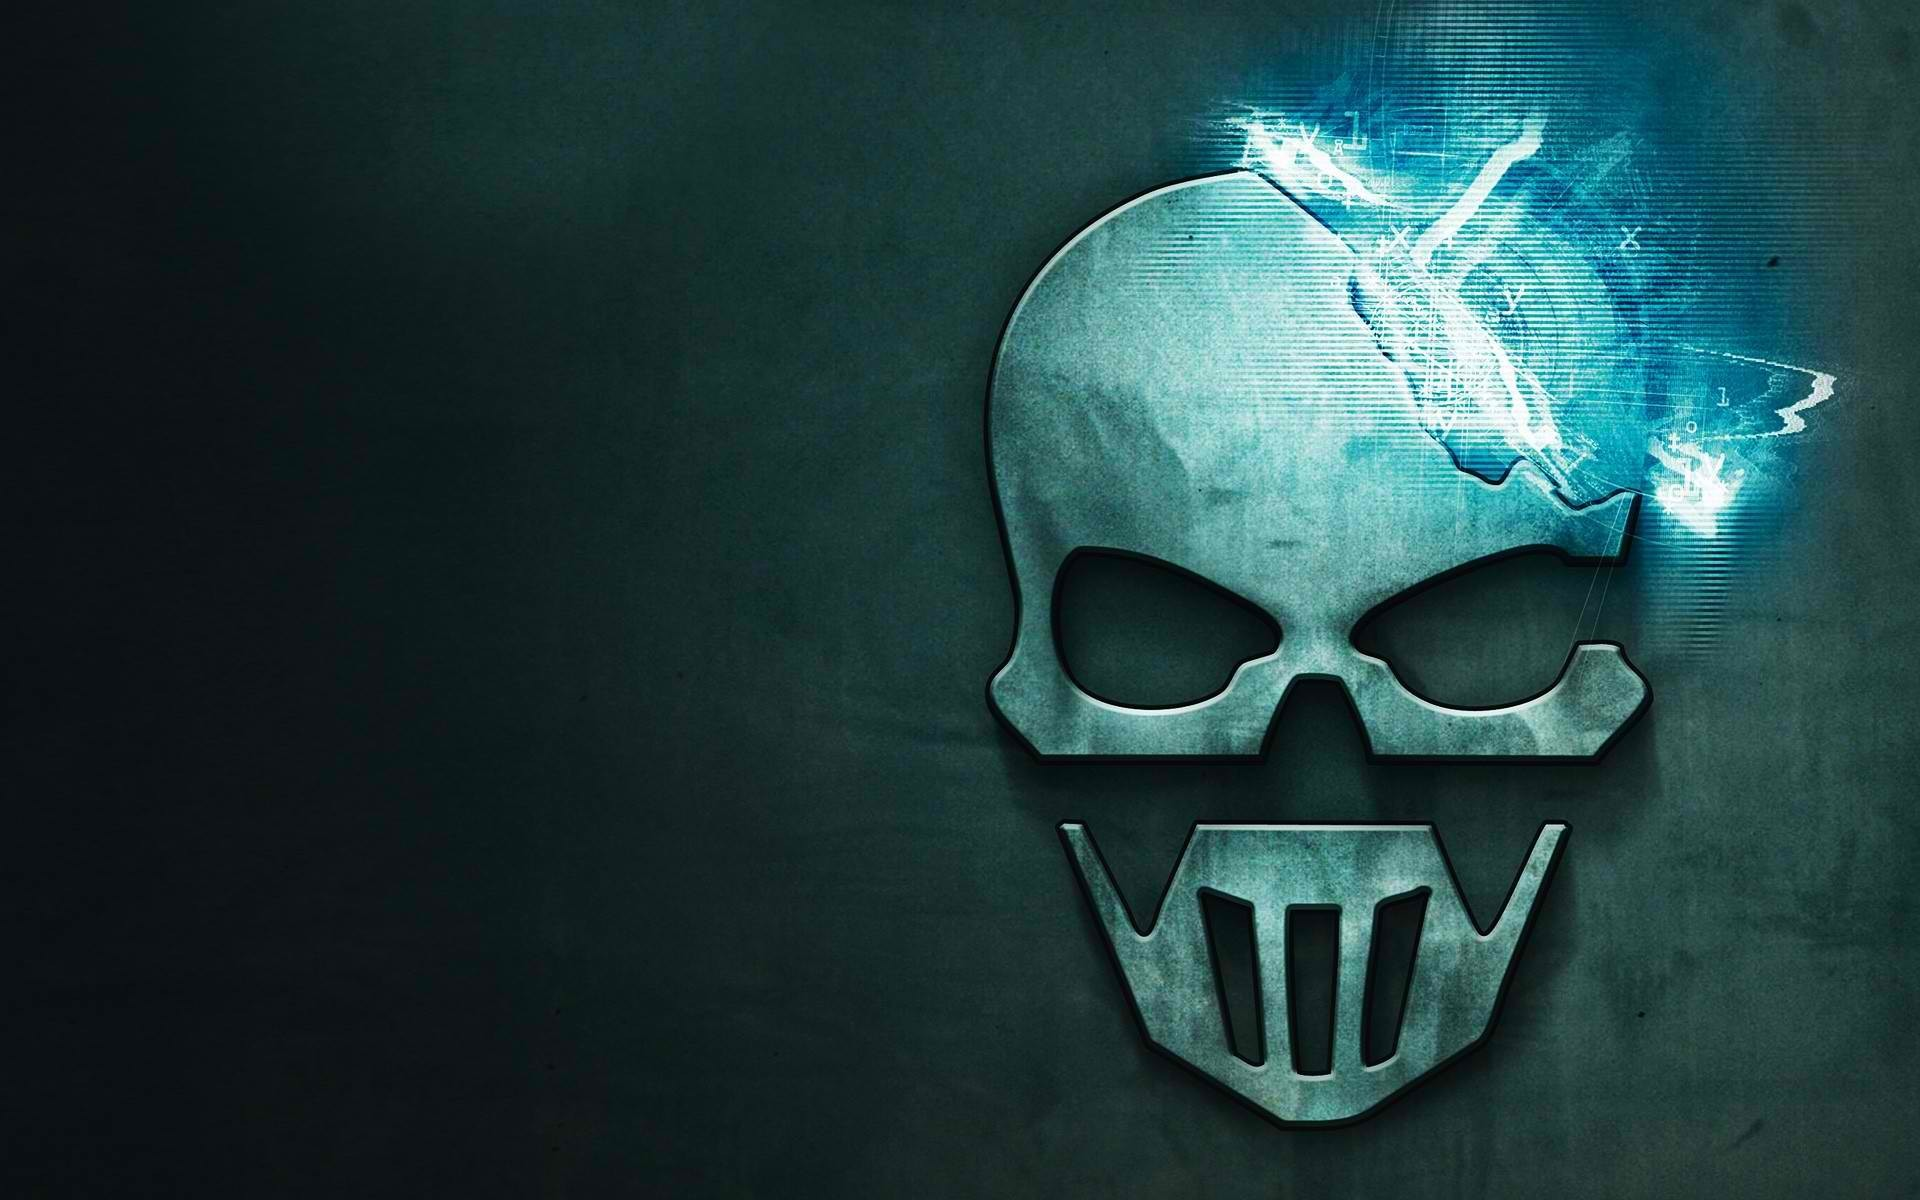 1920x1200  Video Game - Tom Clancy's Ghost Recon: Future Soldier Ghost  Reccon Game Logo Skull Wallpaper